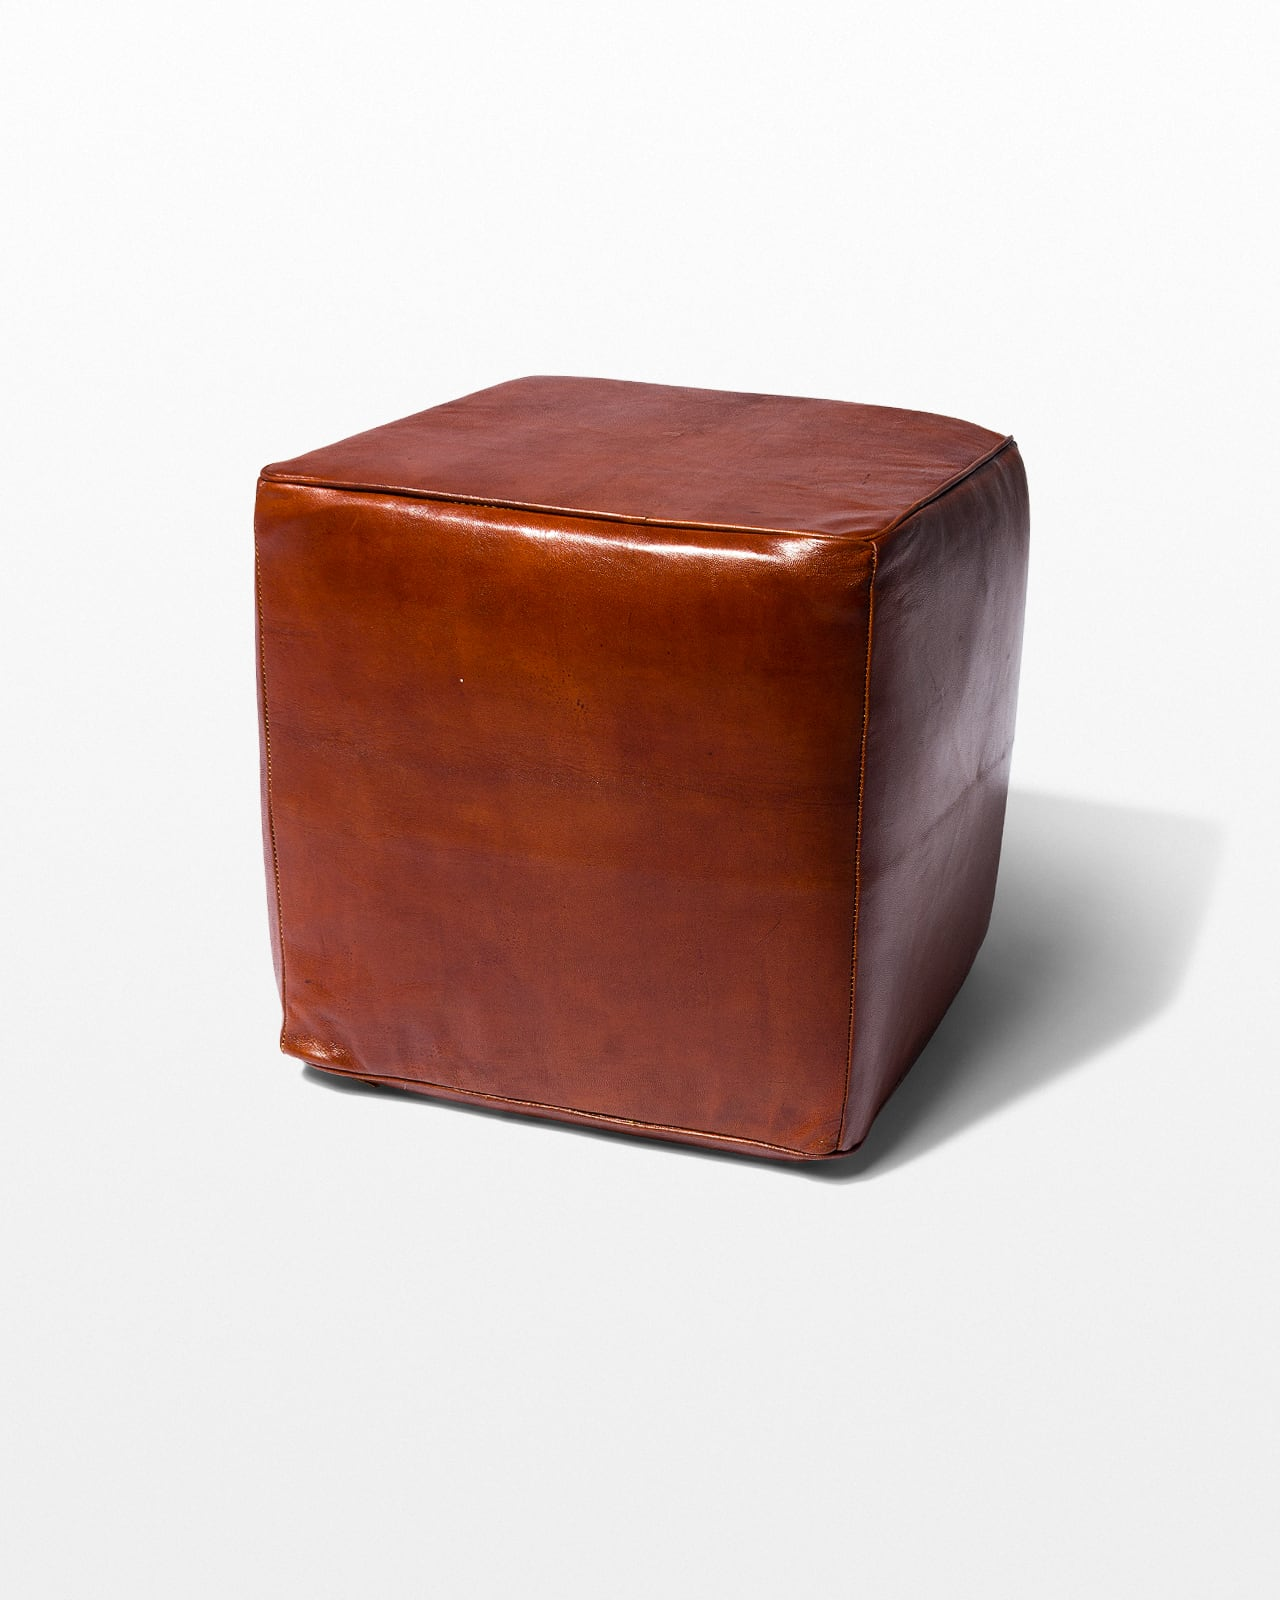 Prime Sg052 Cognac Leather Ottoman Prop Rental Acme Brooklyn Andrewgaddart Wooden Chair Designs For Living Room Andrewgaddartcom